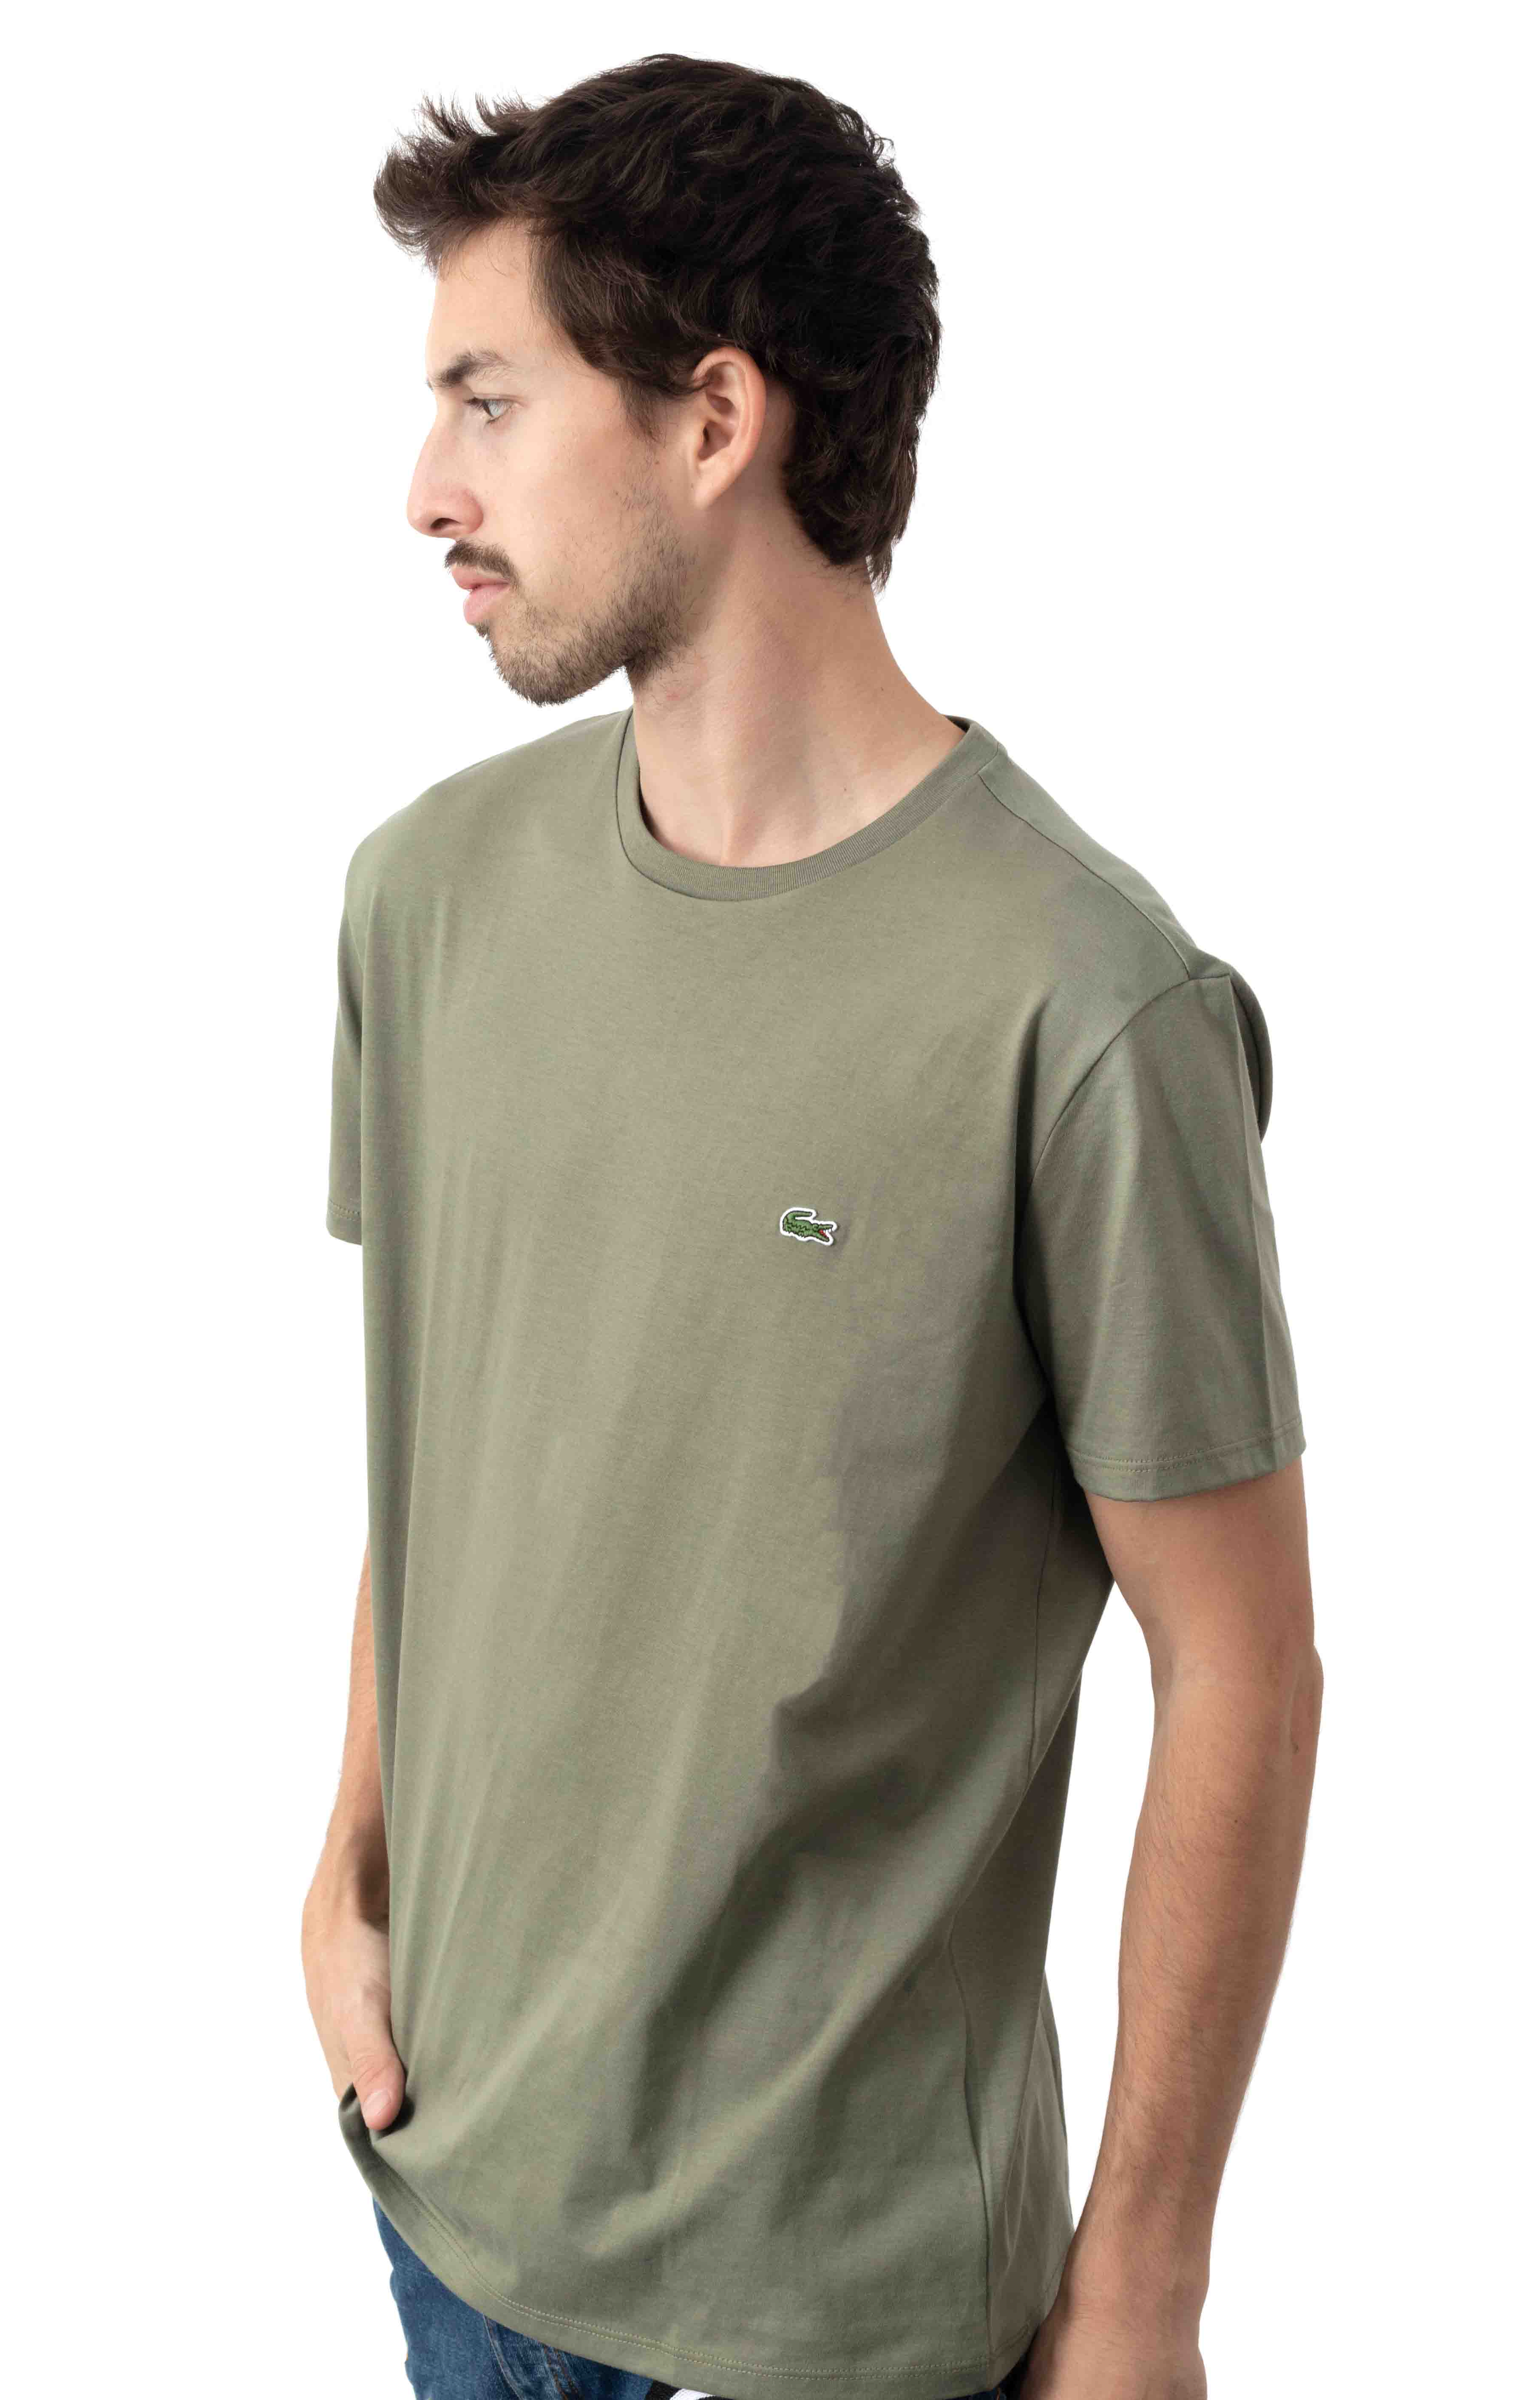 Crewneck Pima Cotton Jersey T-Shirt - Khaki Green  2